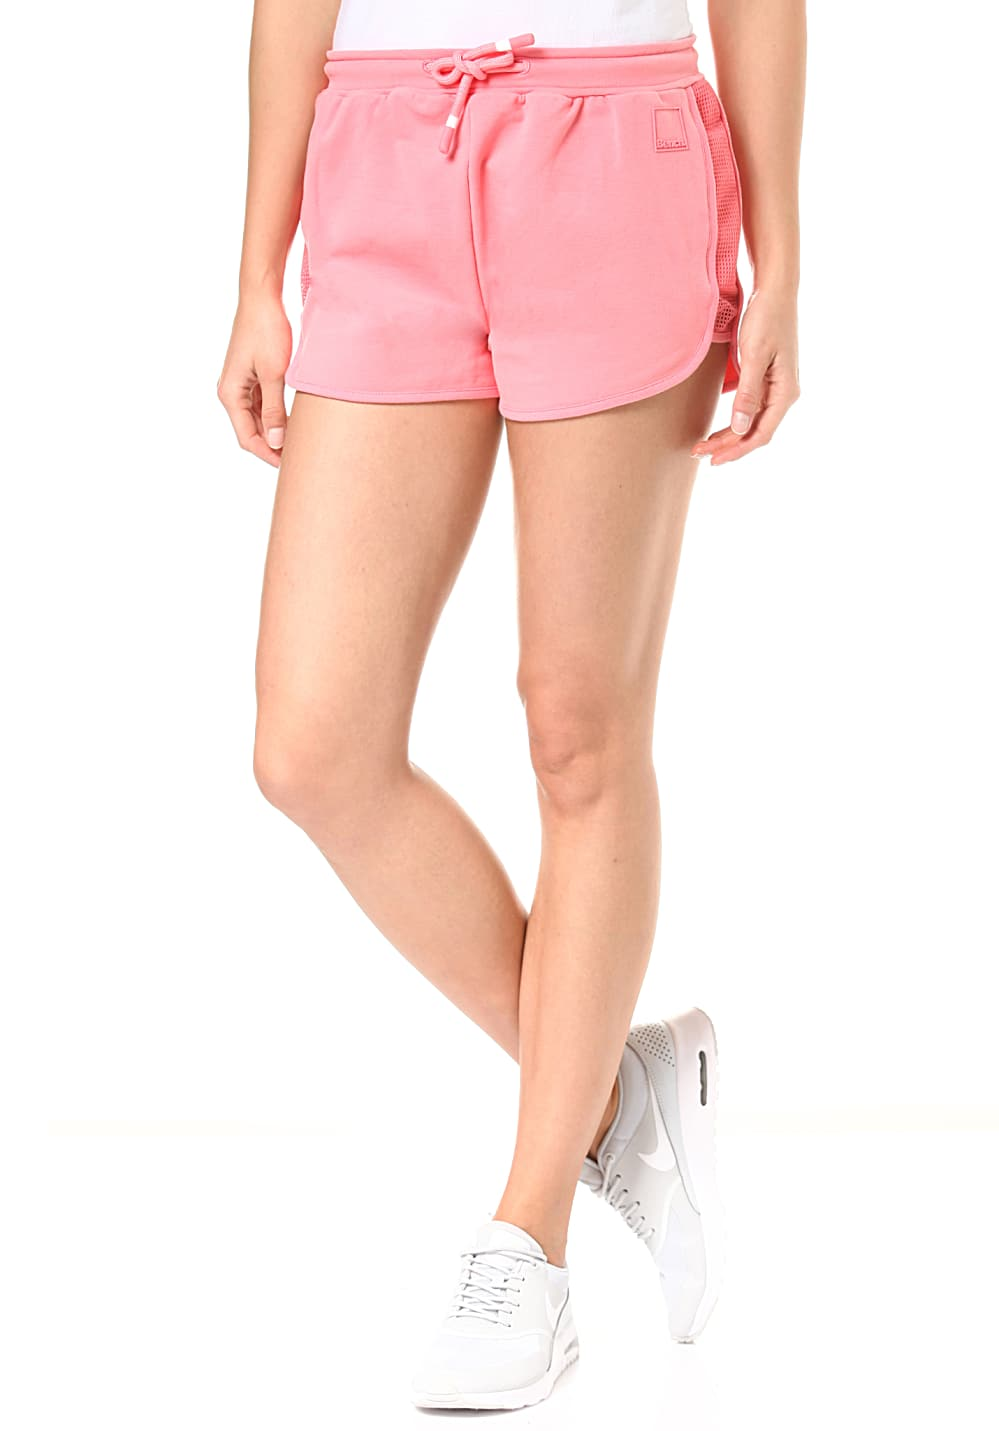 Hosen für Frauen - Bench. Sweat Pants Mesh Insert Shorts für Damen Pink  - Onlineshop Planet Sports